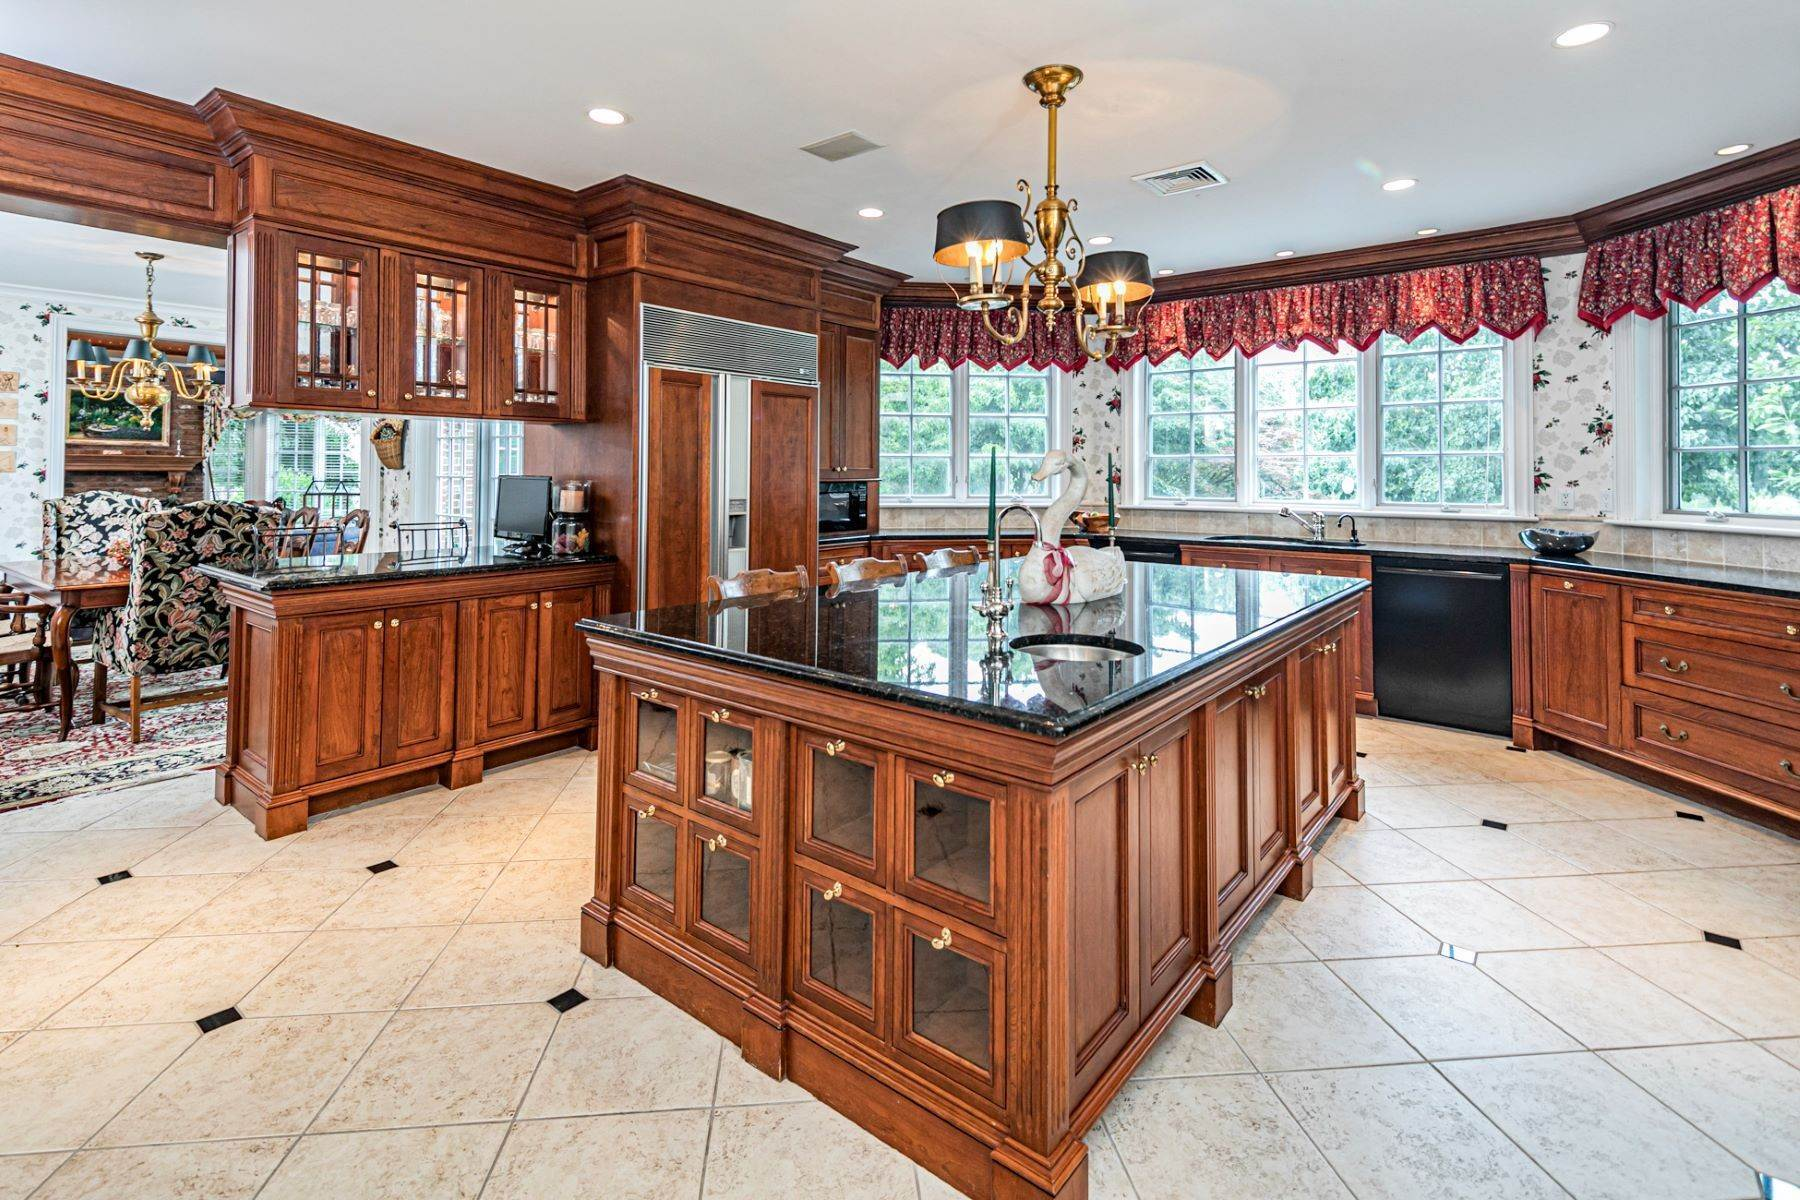 8. Single Family Homes for Sale at Private Compound with Every Amenity Imaginable 82 Aunt Molly Road Hopewell, New Jersey 08525 United States